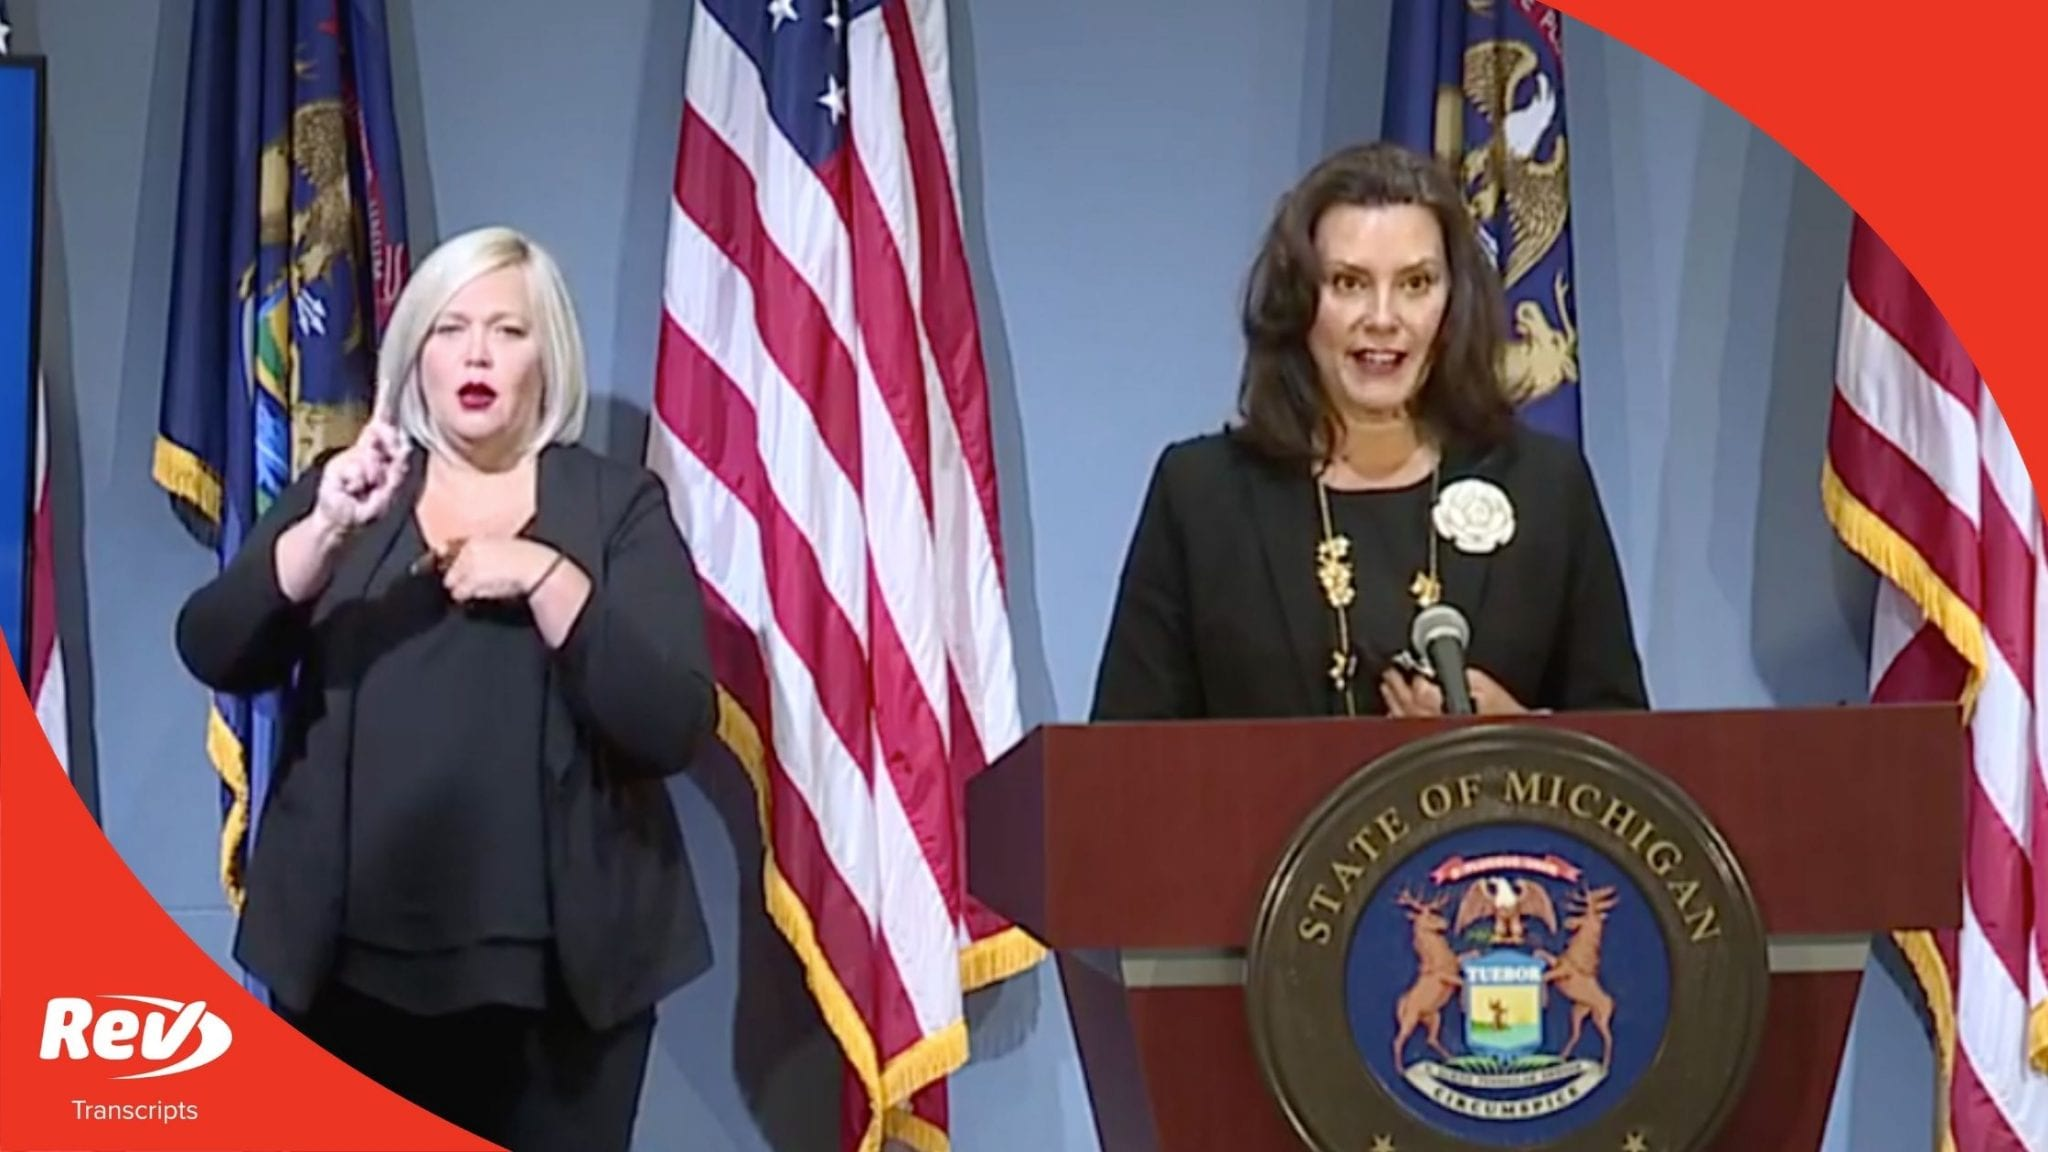 Michigan Governor Gretchen Whitmer Press Conference Transcript August 25